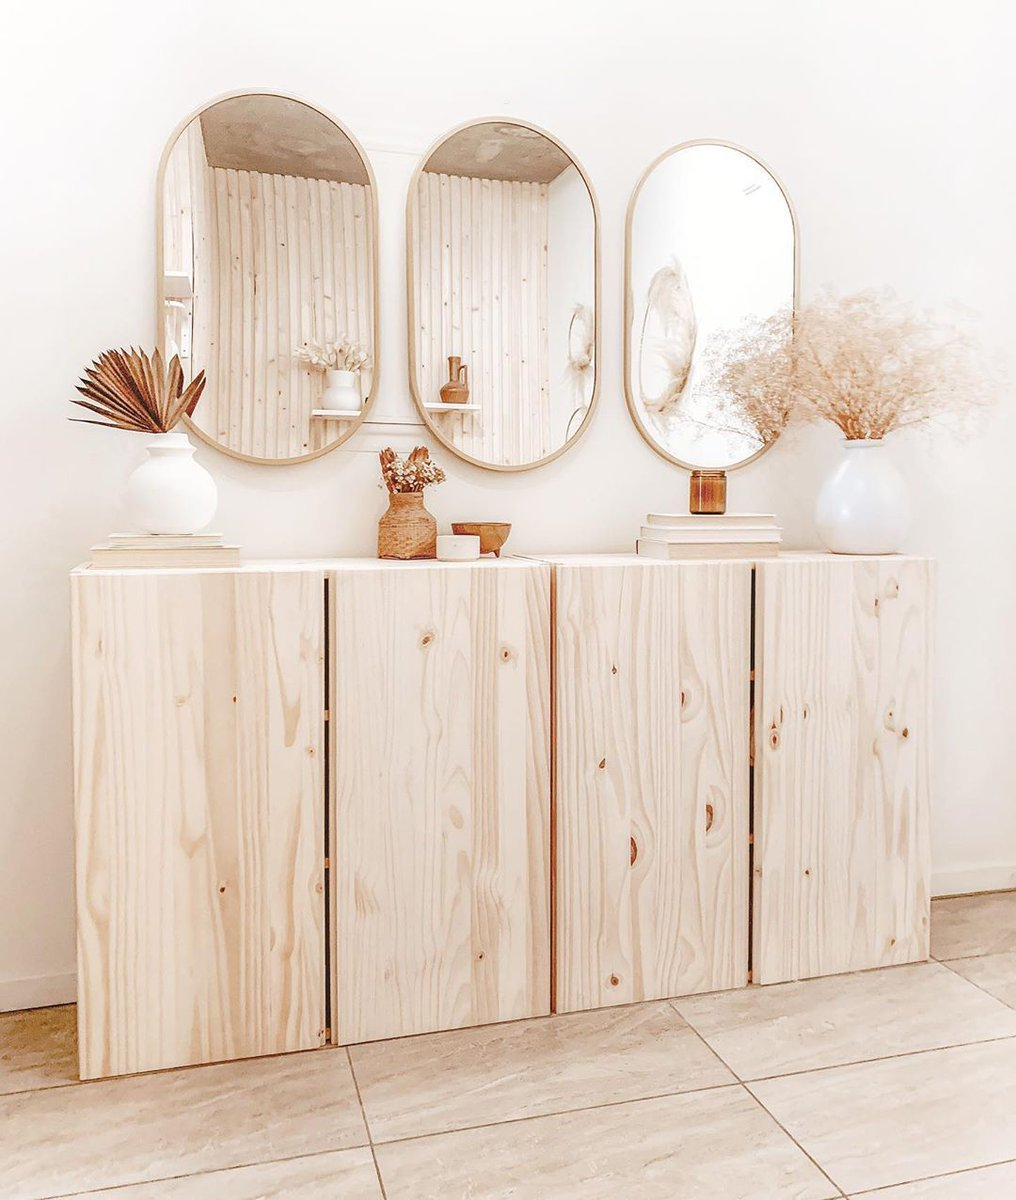 Vanity and Dresser Goals@decor.by.dp  Follow Us #theurbanport . . . #homestyle #apartmenttherapy #bohodecor #aabhome #smallspaceliving #entrywaydecor #interiordesigning #bohohome #neutralstyle #apartmentinteriordesign #rentersclub⠀ #interiortrends #interiorinspo #Decopic.twitter.com/XufEjghqXq